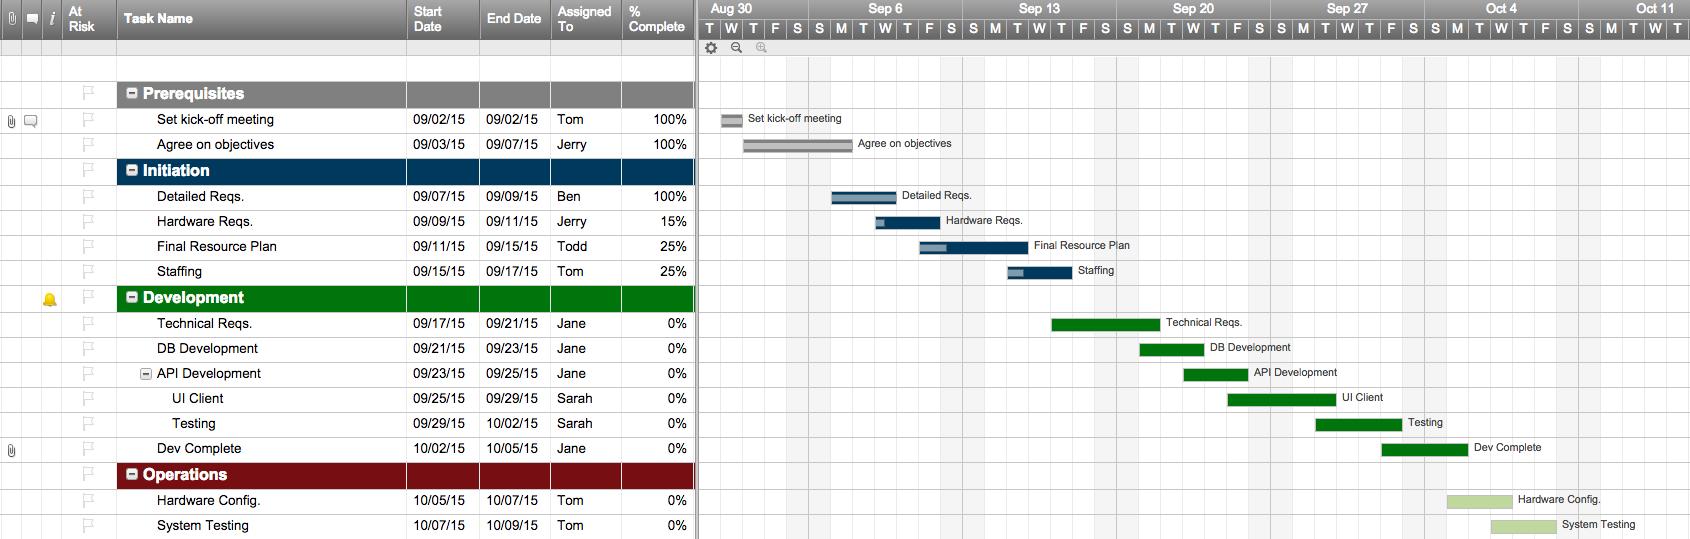 Construction Schedule Spreadsheet within Top Project Plan ...